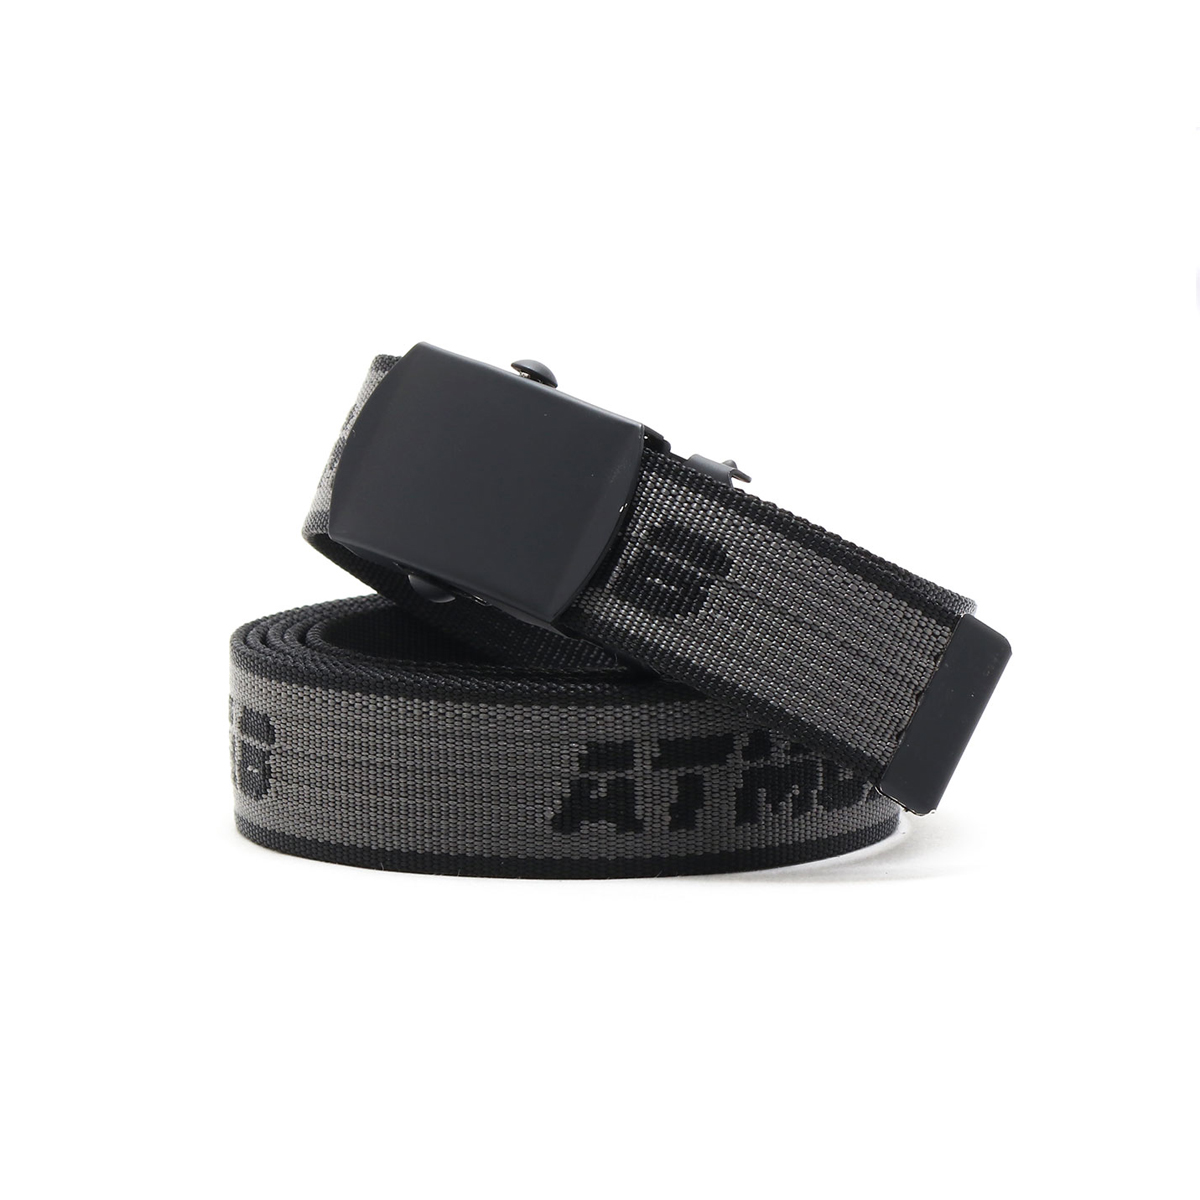 ATMOS LAB GI BELT